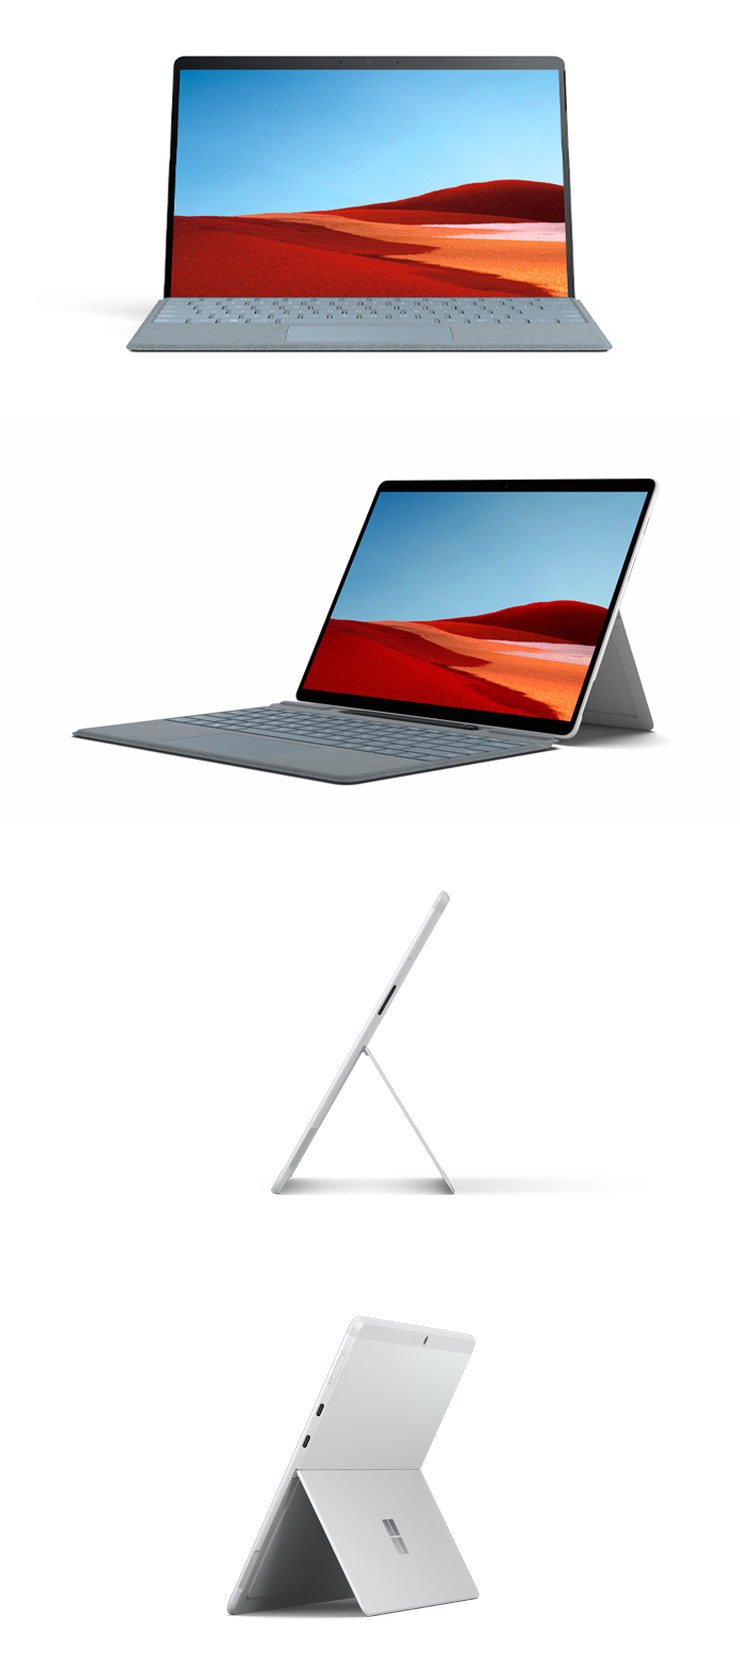 360 rotation of the Surface Pro X (Platinum)